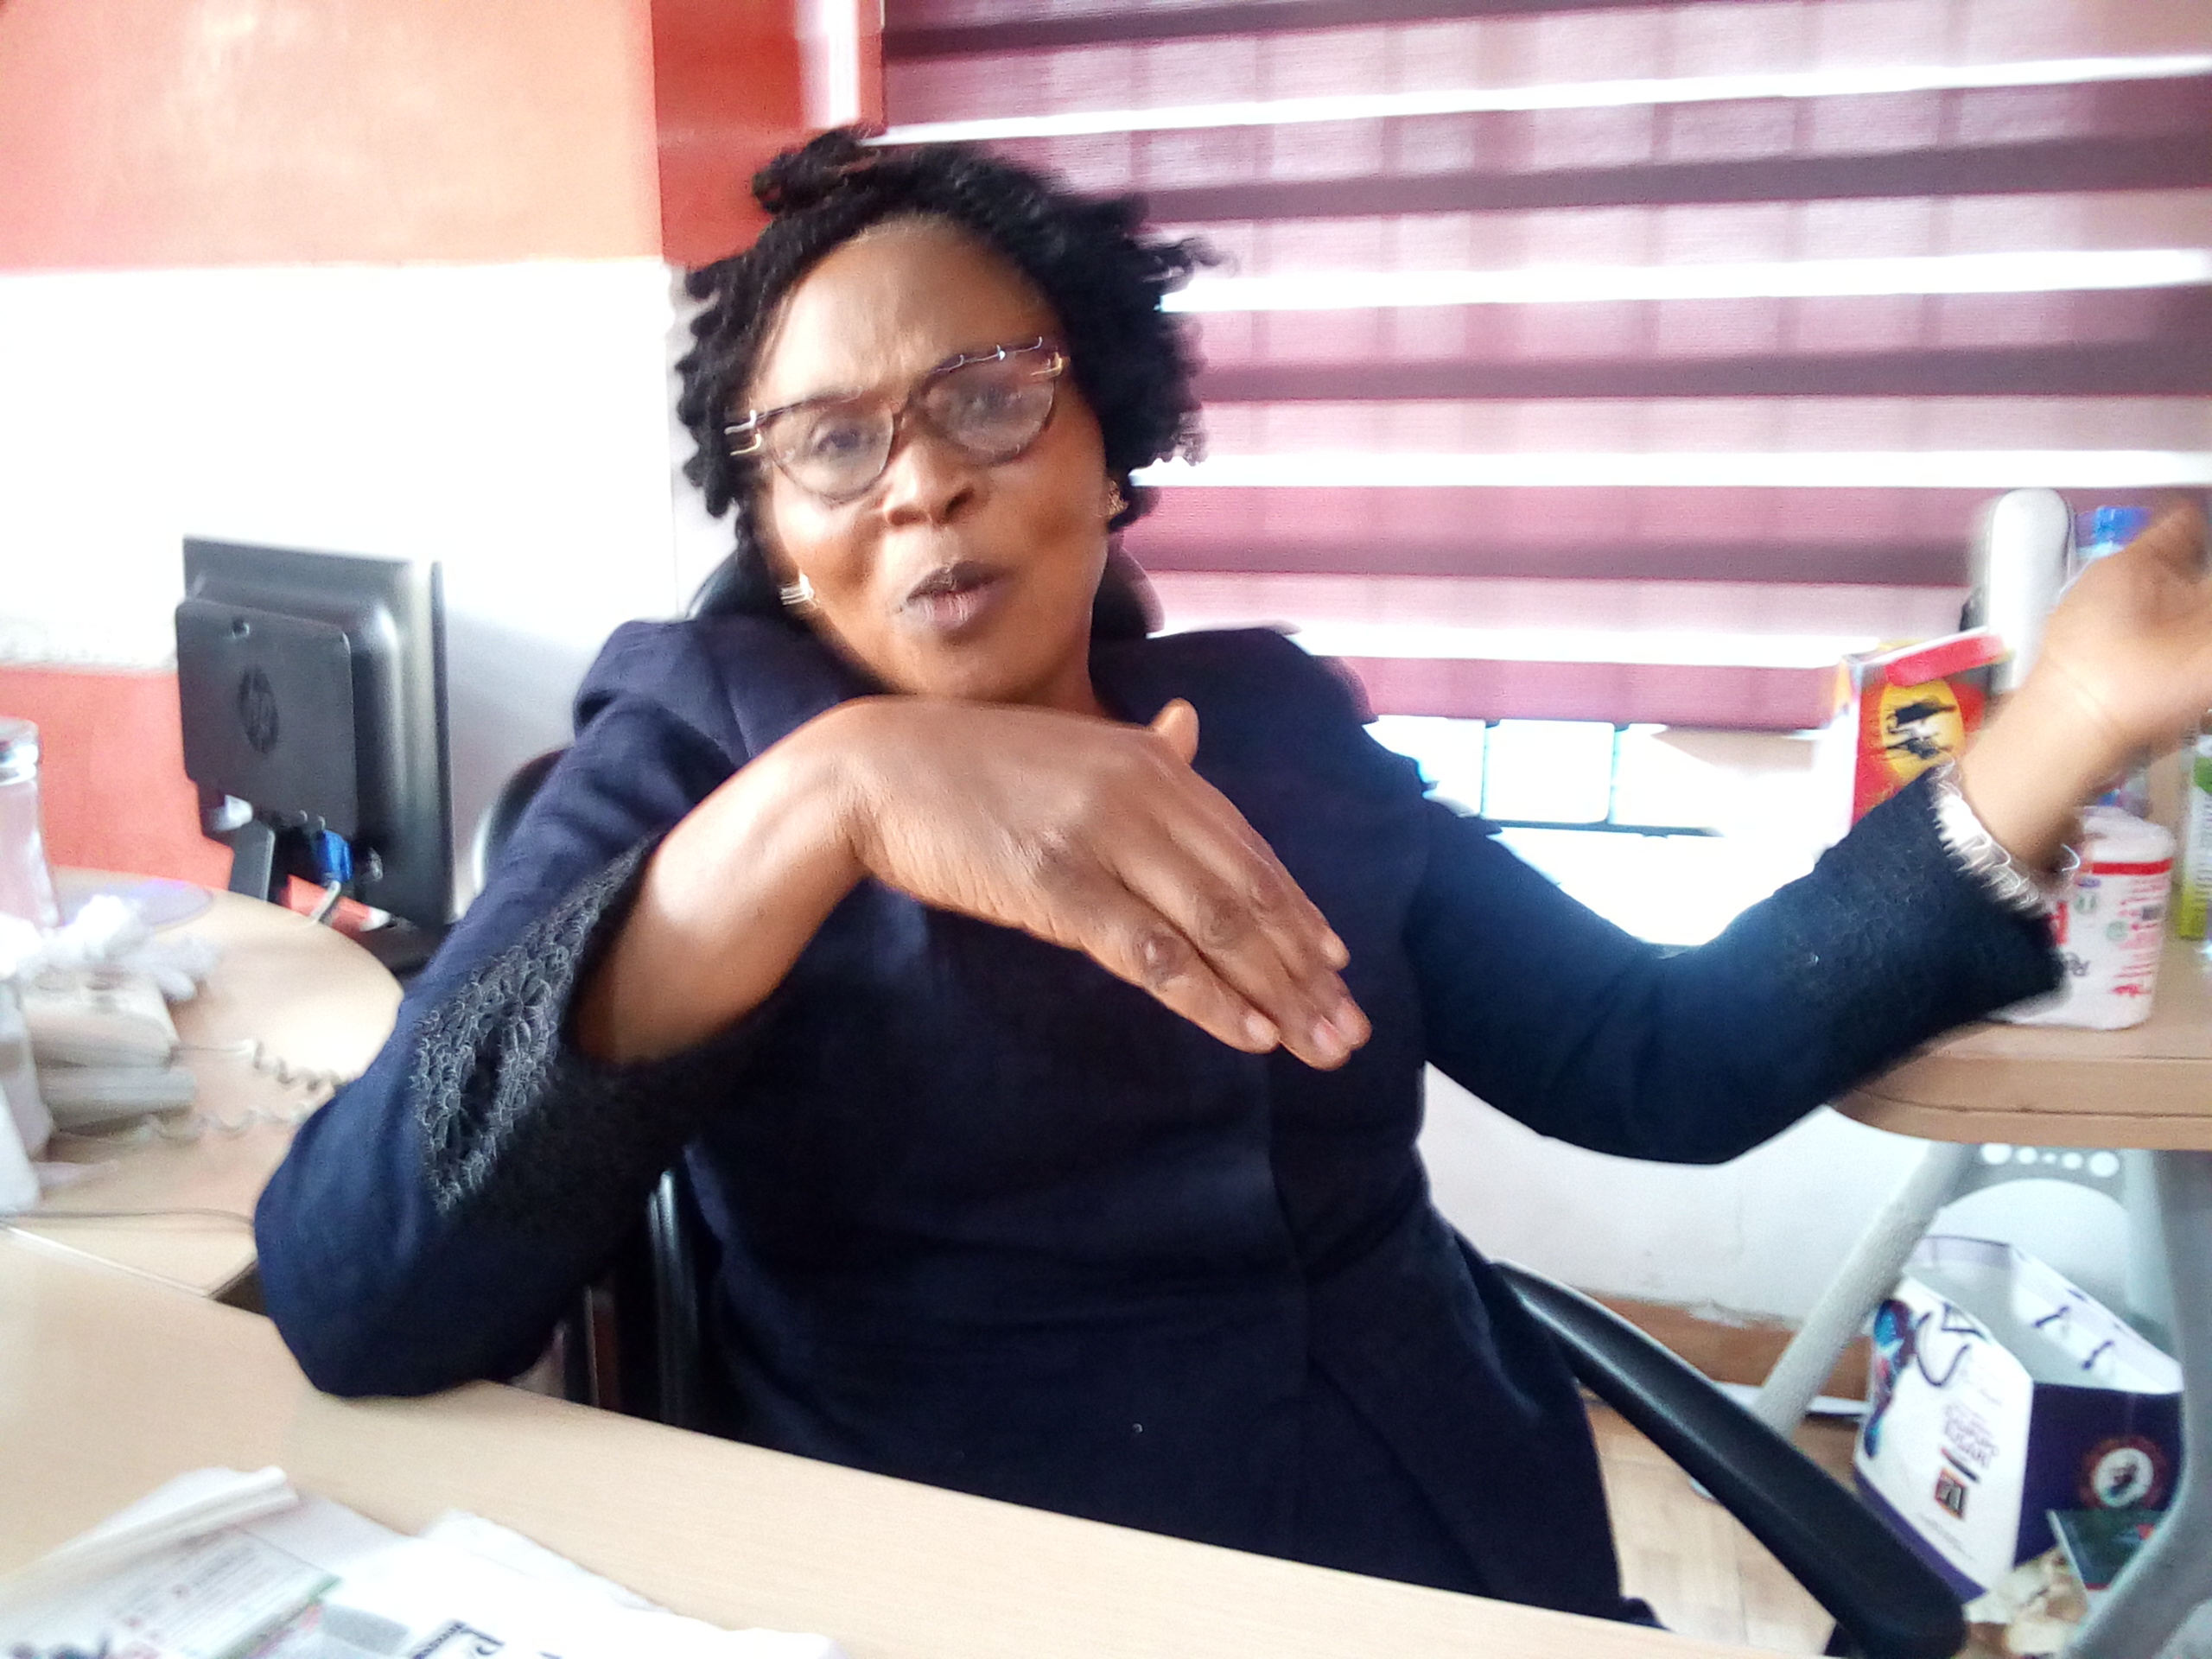 INTERVIEW: Untold story of how my family survived IBB, Abacha years of dictatorship –Funmi Falana (I)